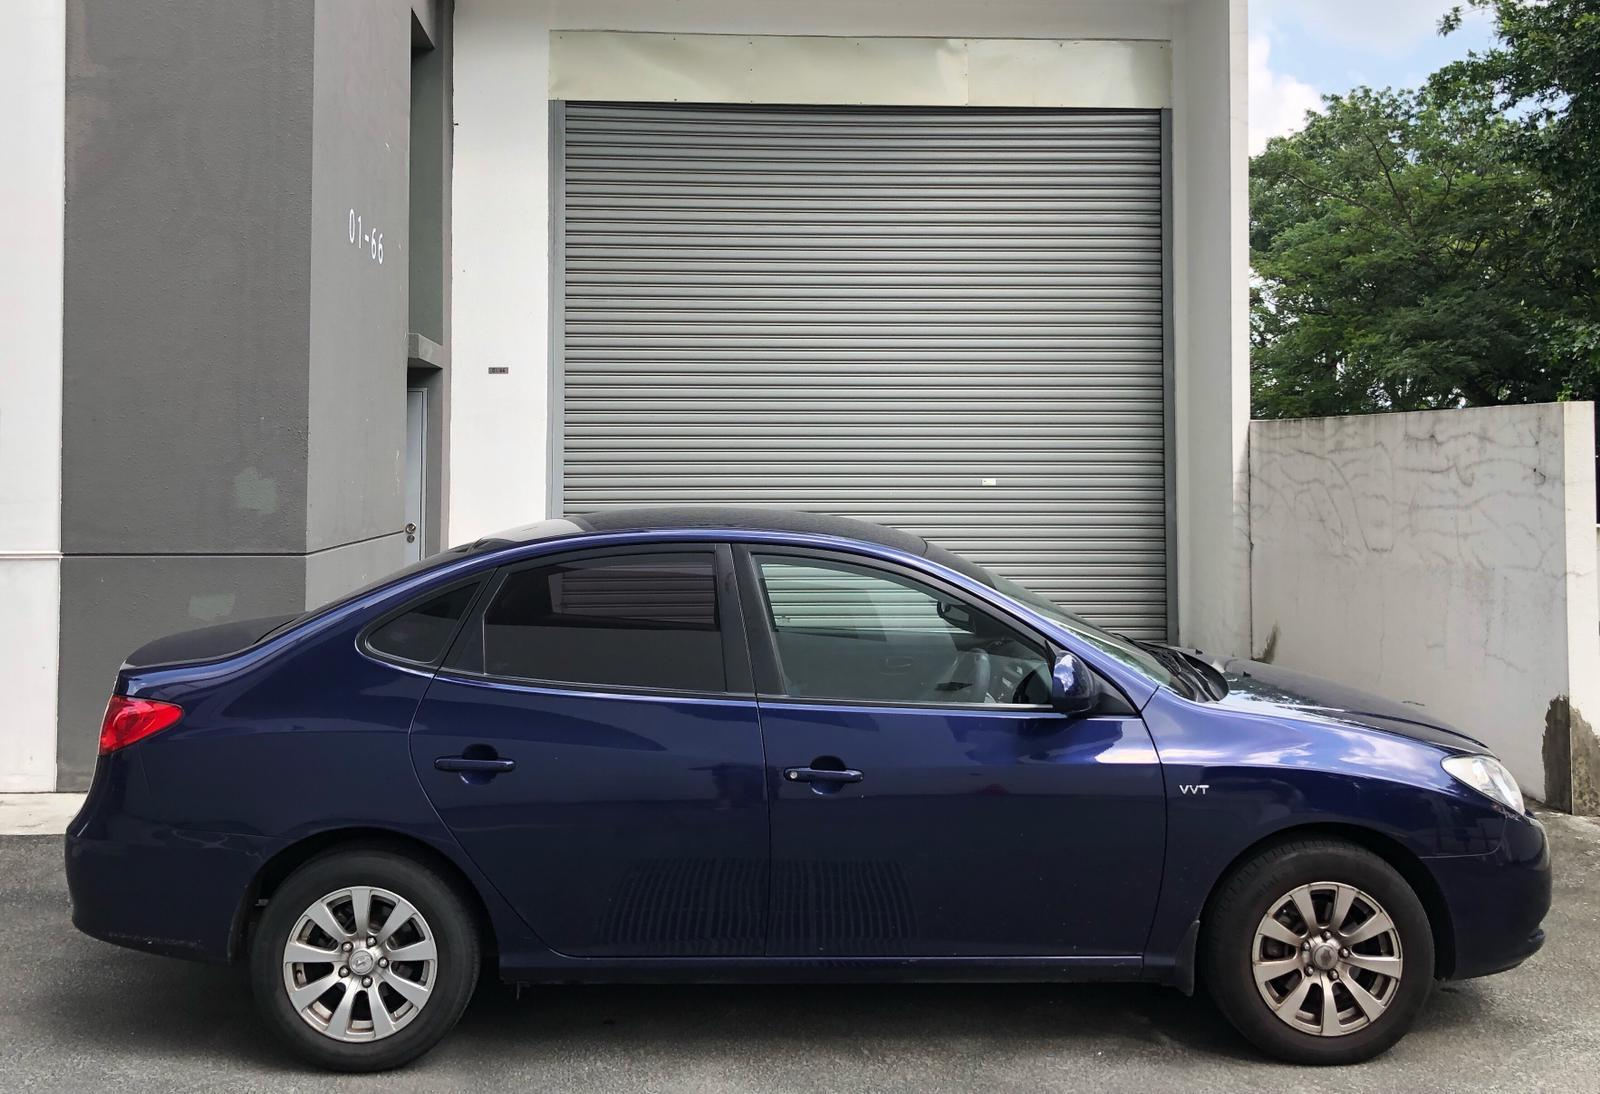 Hyundai Avante 1.6a*Good engine&Good condition* Mazda Toyota Vios Wish Altis Car Axio Premio Allion Camry Estima Honda Jazz Fit Stream Civic Cars $50 perday PHV Grab Rental Gojek Or Personal Use Low price and Cheap